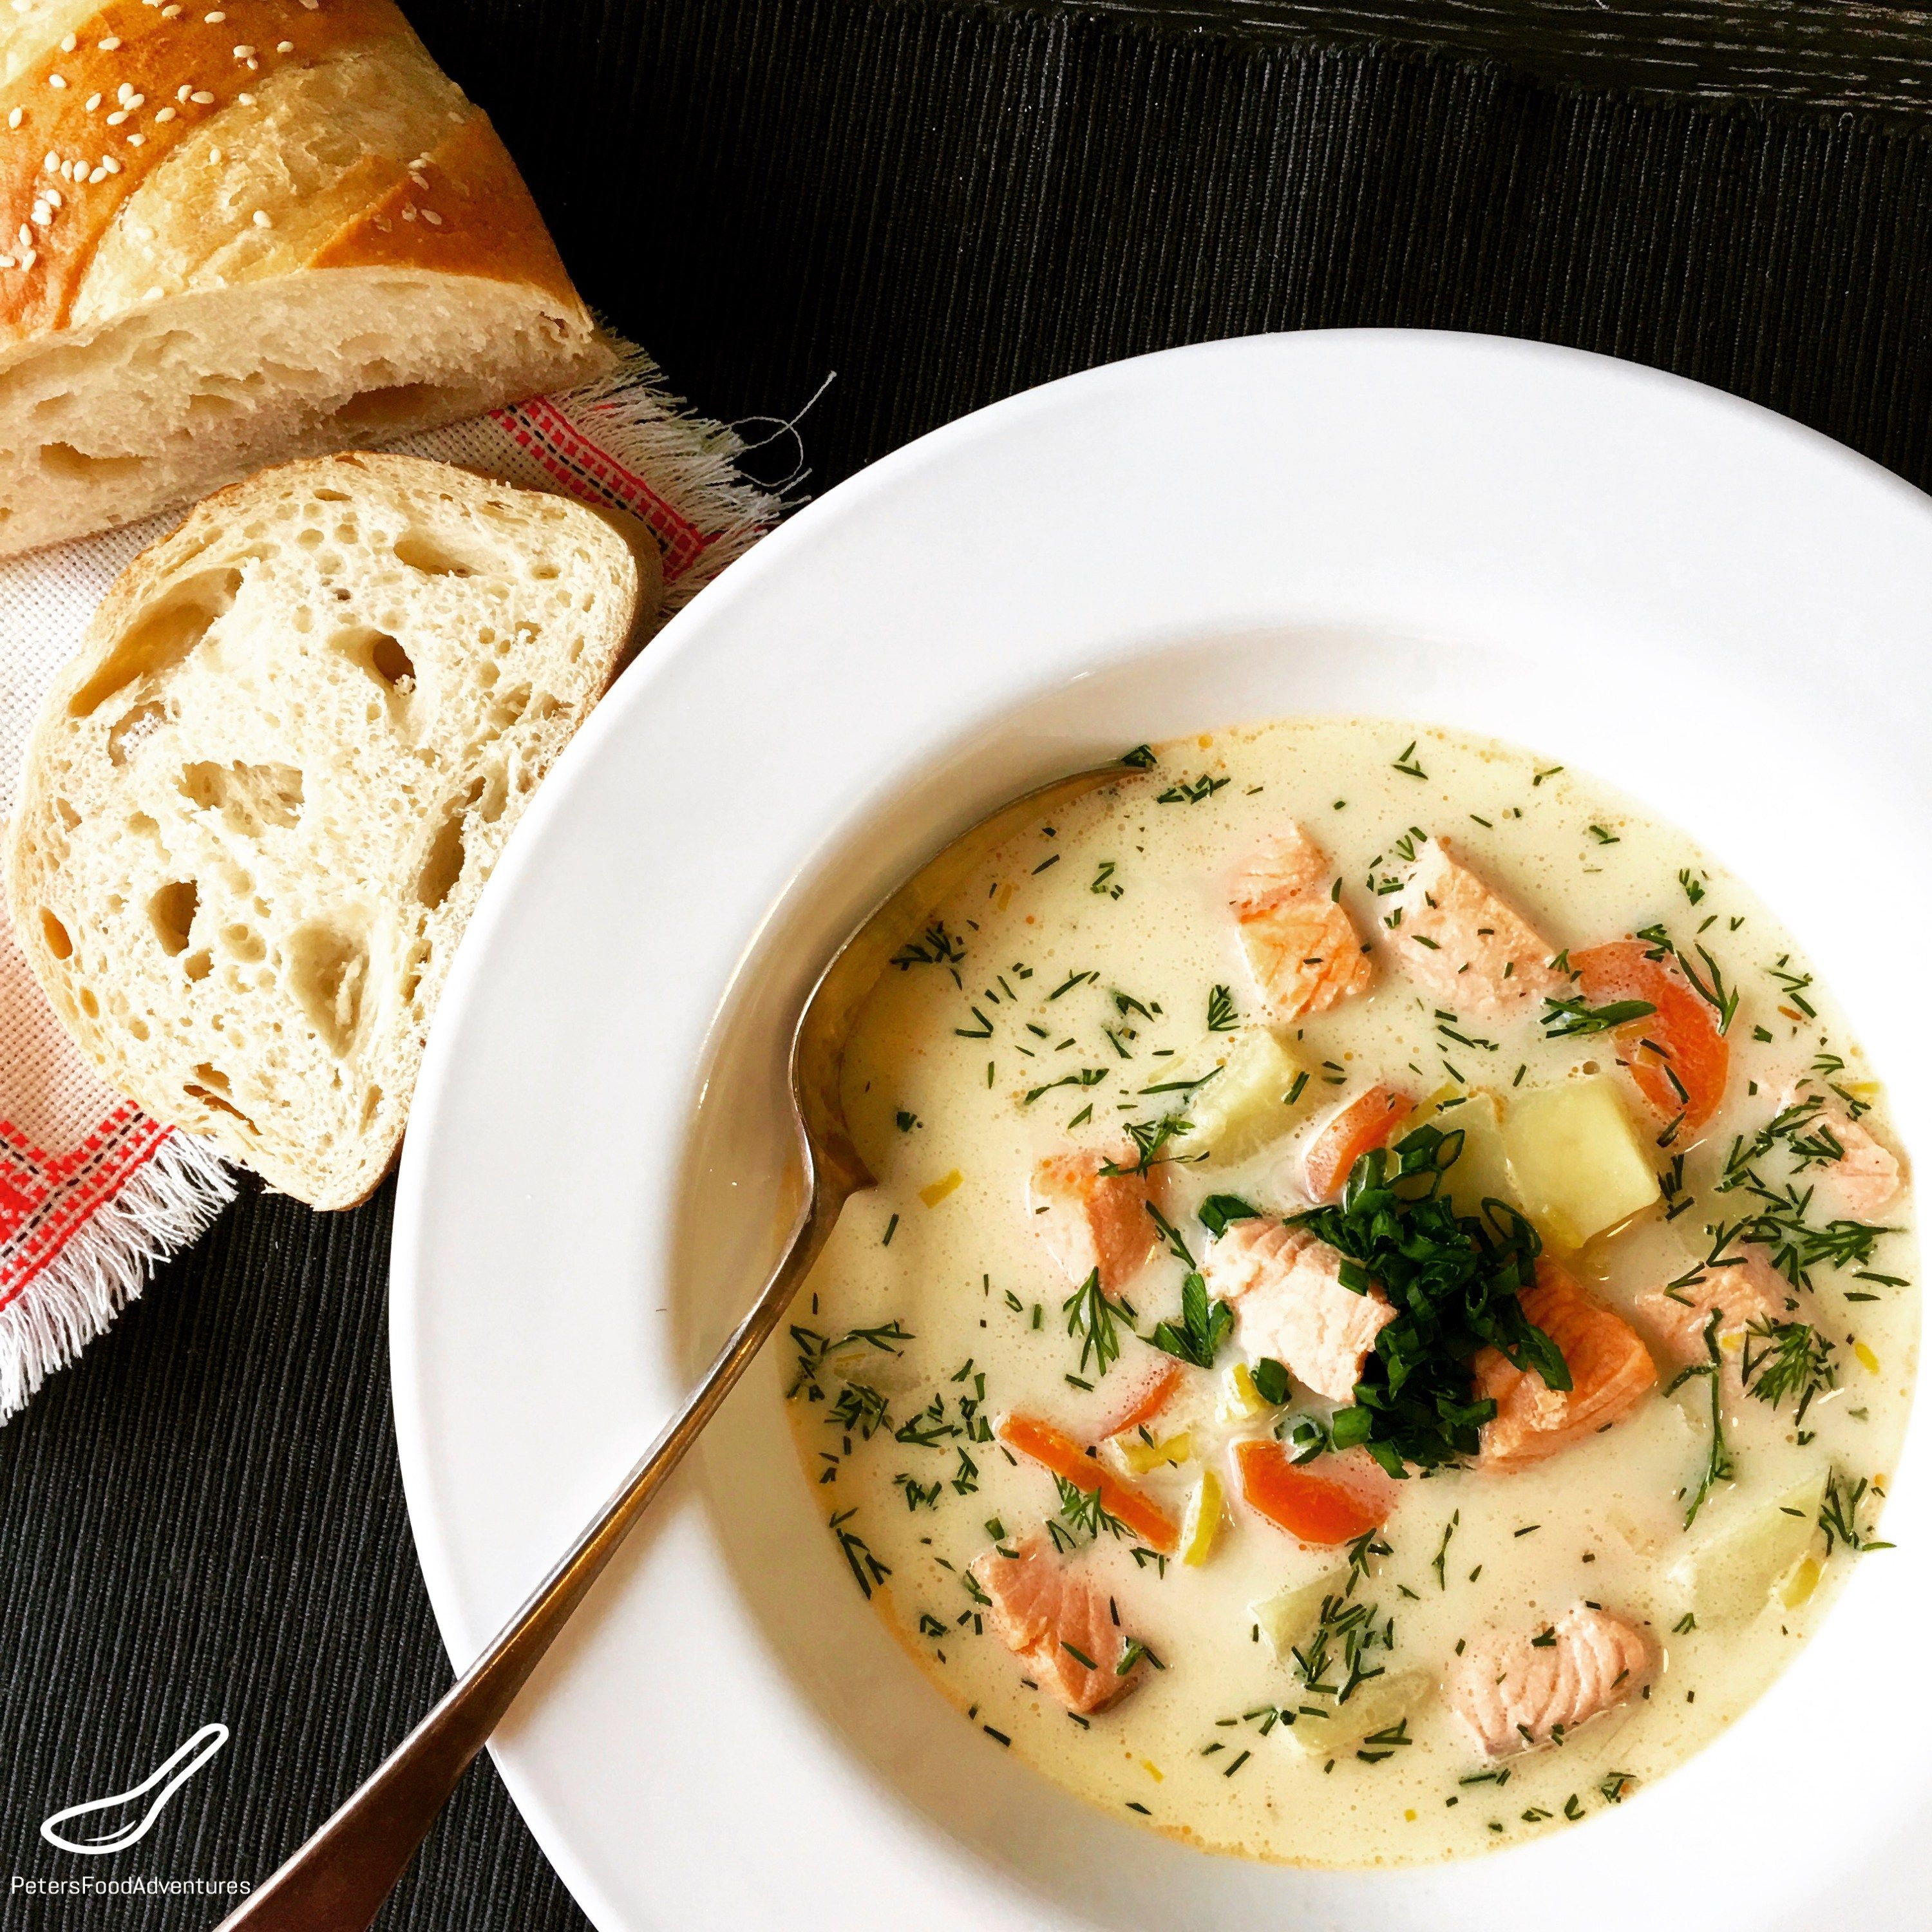 A creamy Salmon and Potato Soup or Creamy Ukha Soup. Real Fish Broth made with fish heads. Lohikeitto - Finnish Fish Soup (Финская уха)